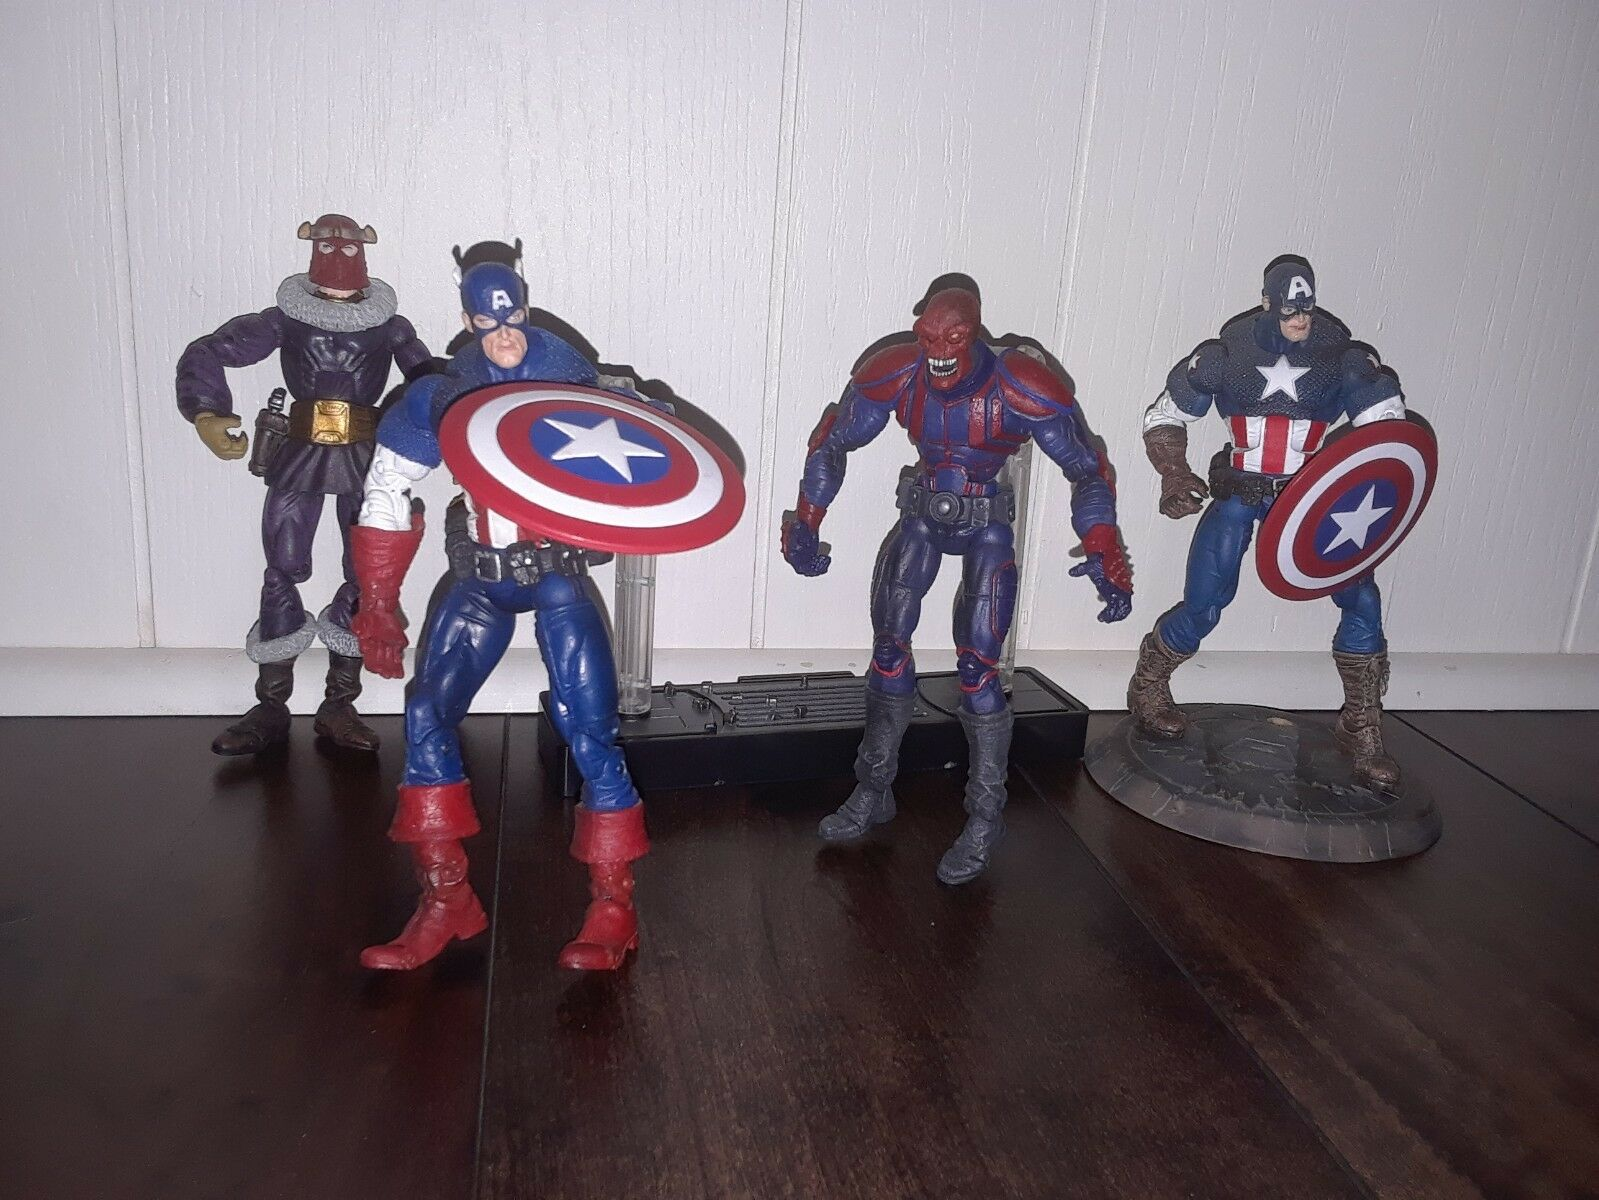 Captain america marvel - legenden los das gesicht weg, rot skull, baron zemo & ultimative